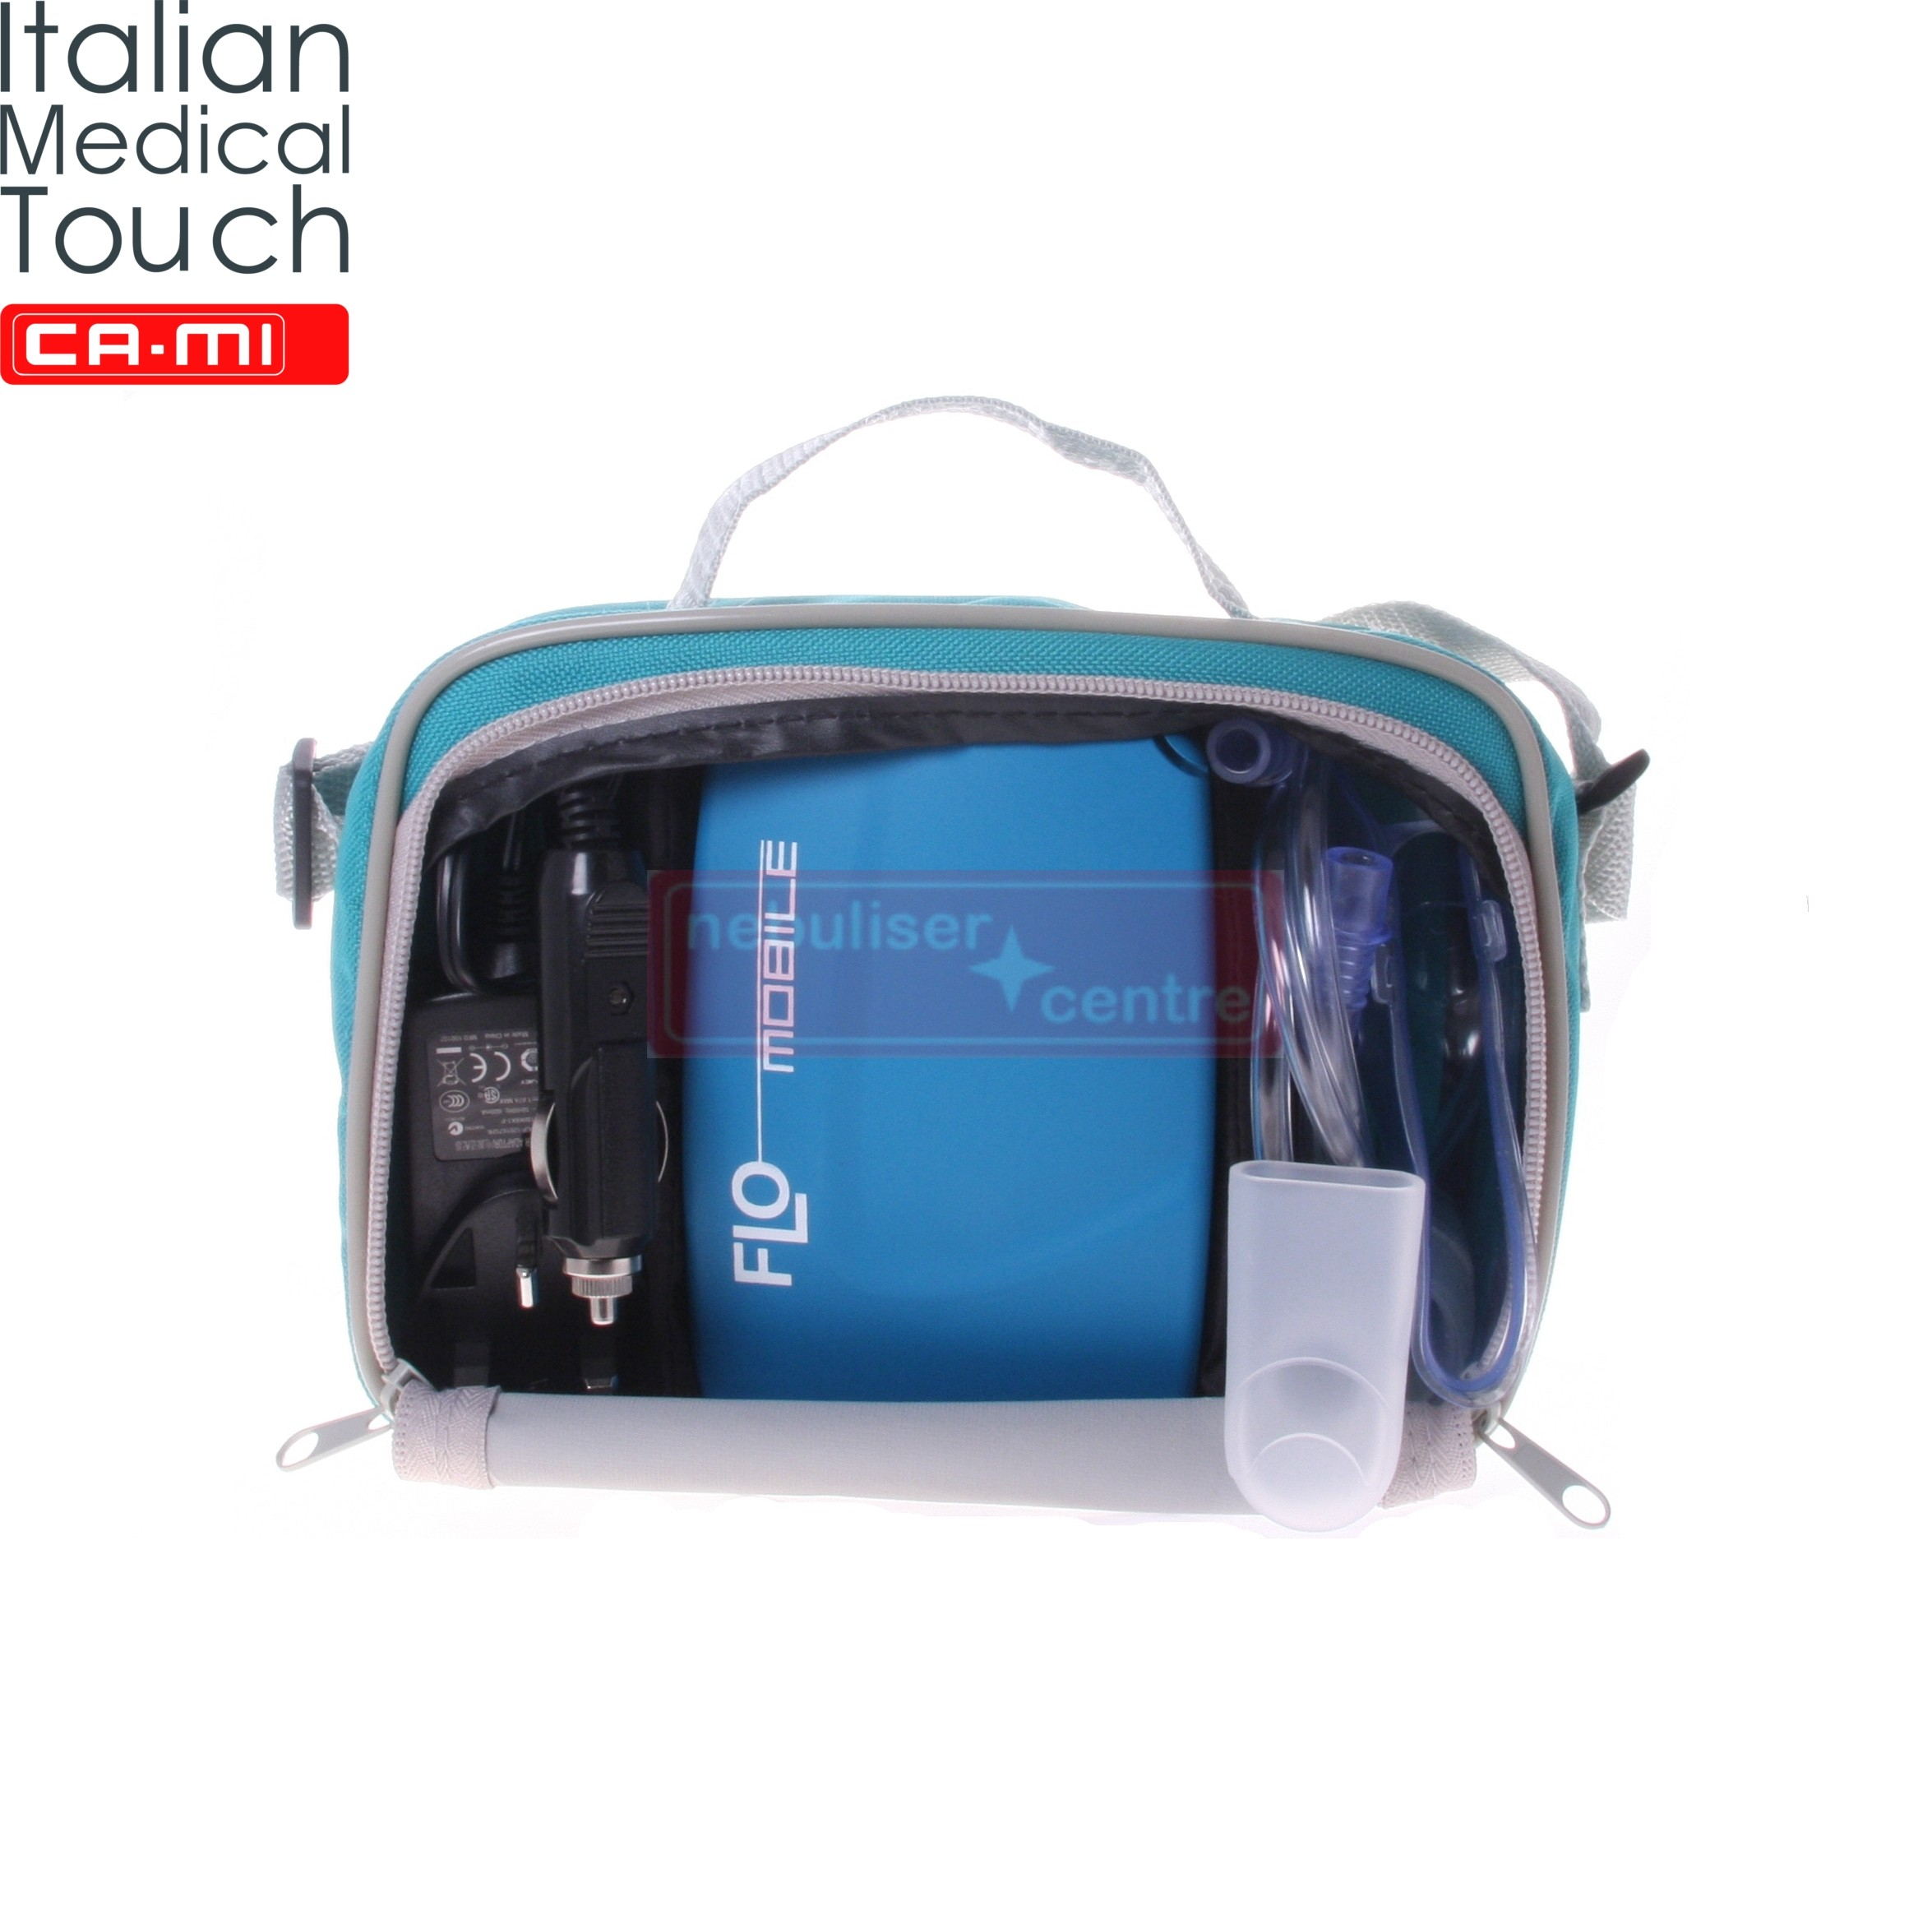 Portable battery nebulizer CA-MI Lite